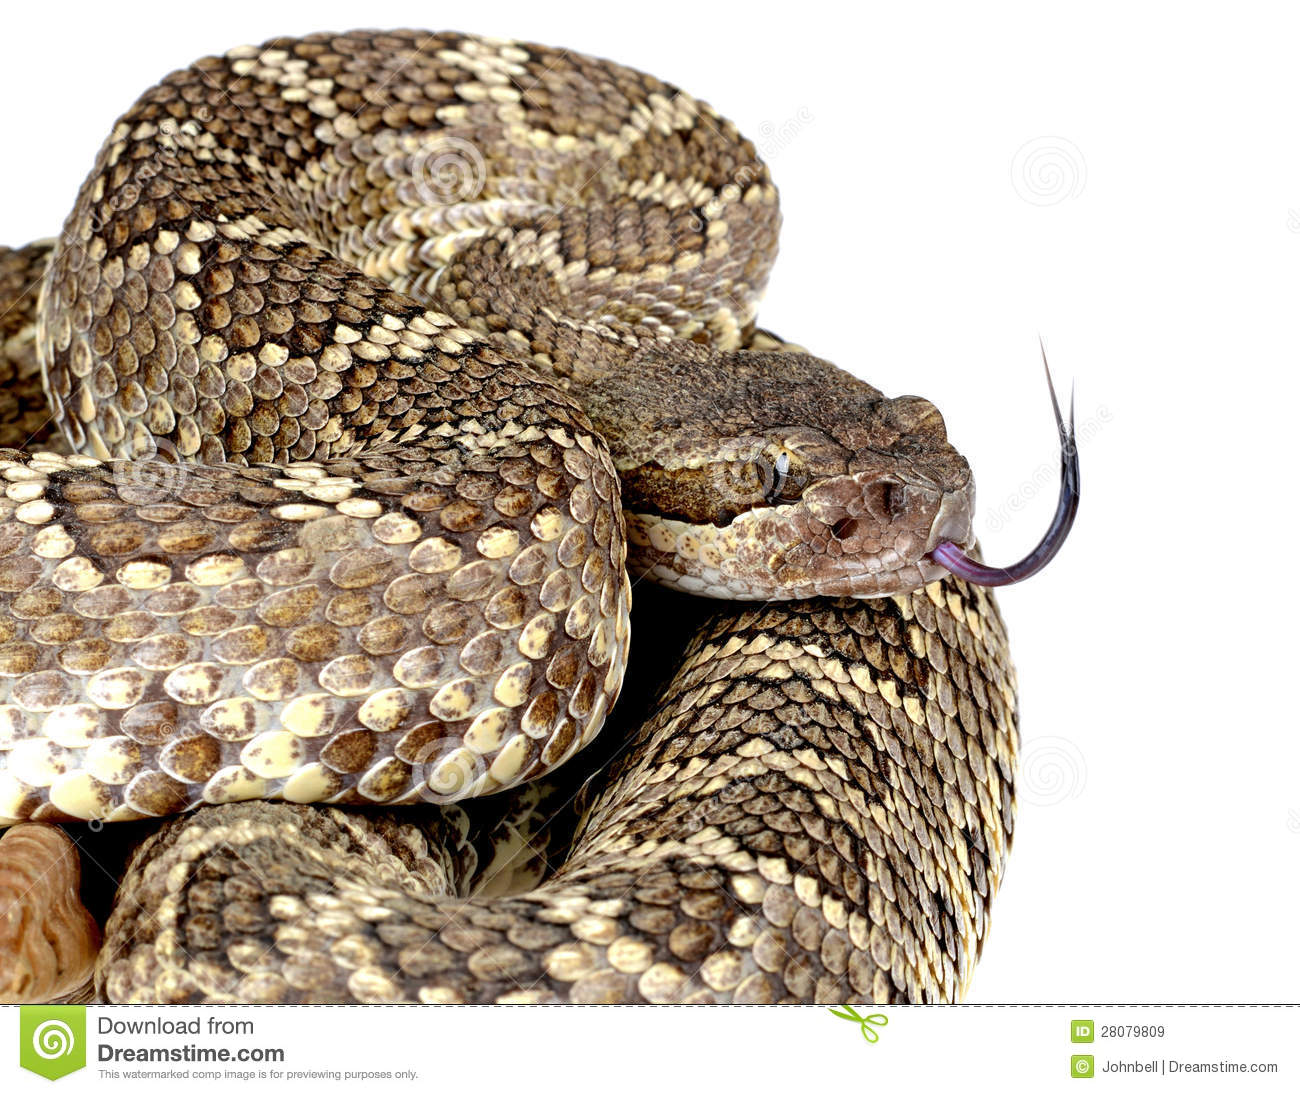 Rattlesnake Clipart Free Southern Pacific Rattlesnake